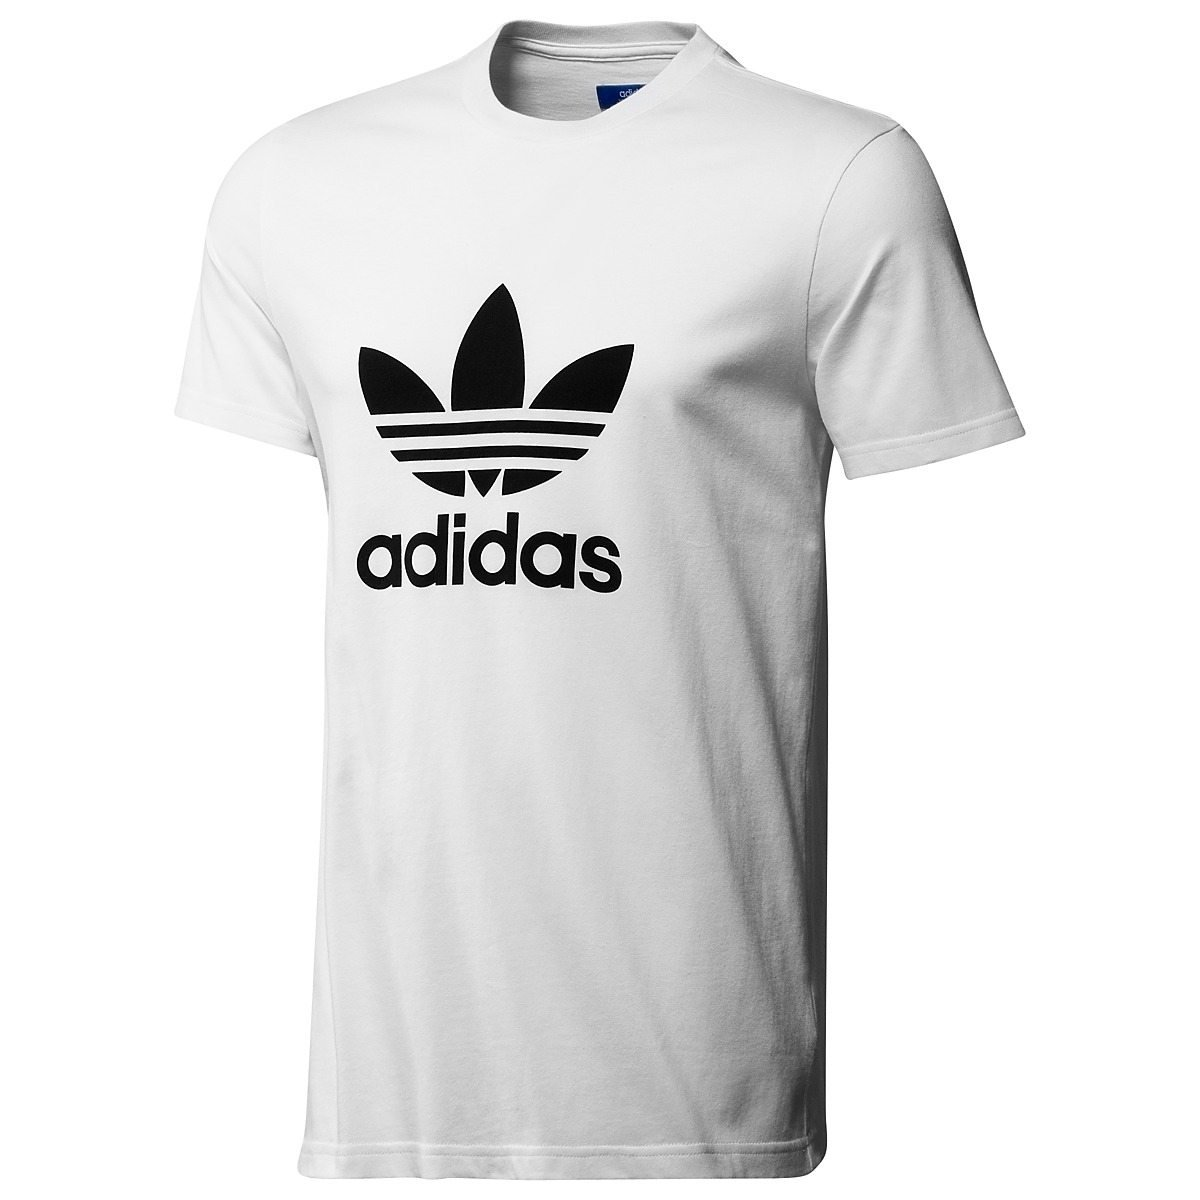 Adidas originals trefoil tee shirt herren t shirt for Adidas lotus t shirt